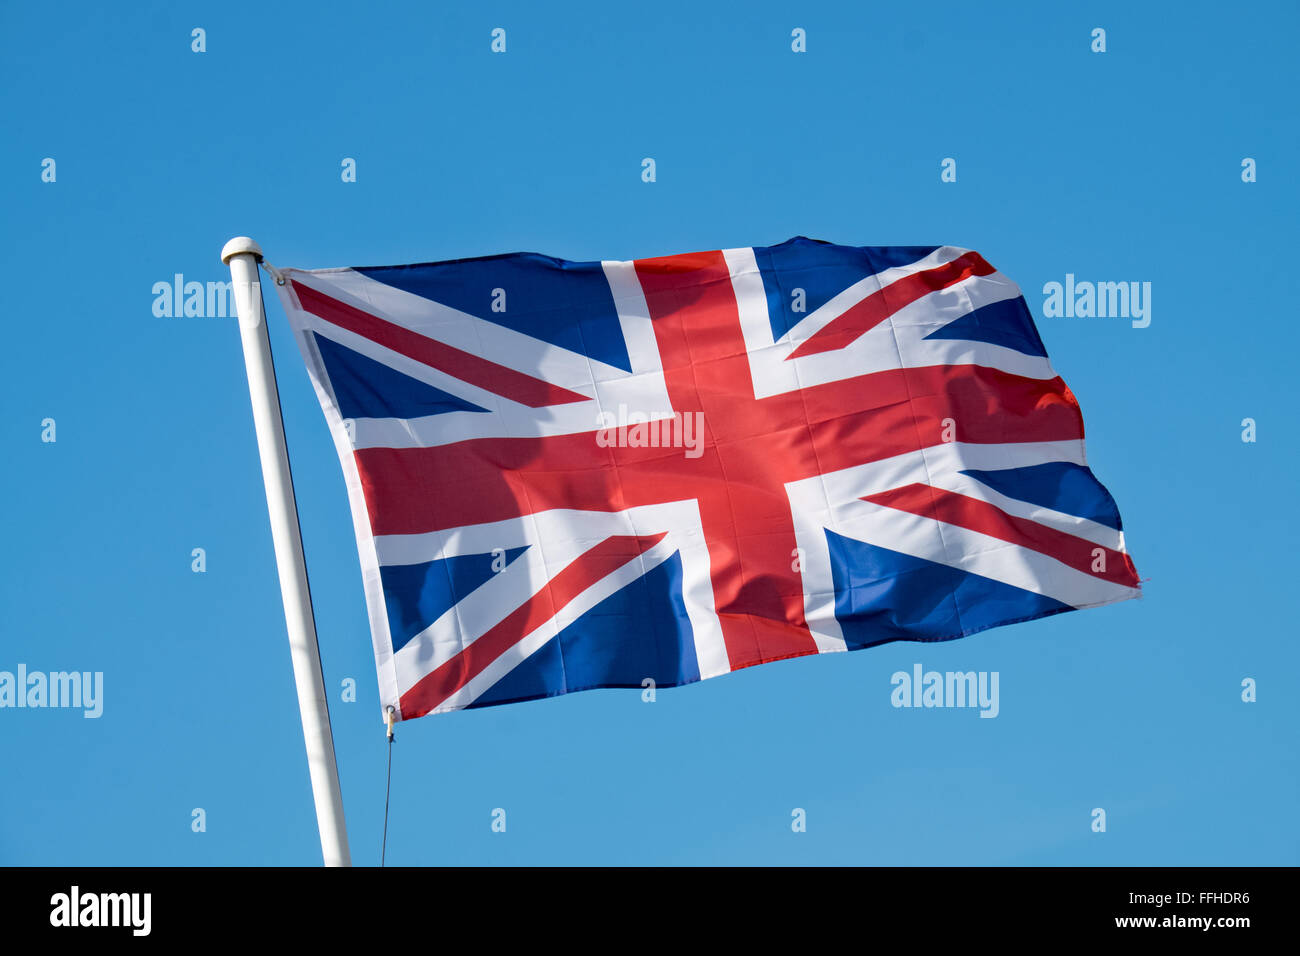 The union flag fluttering atop a white flagpole on a sunny day against a clear blue sky Stock Photo